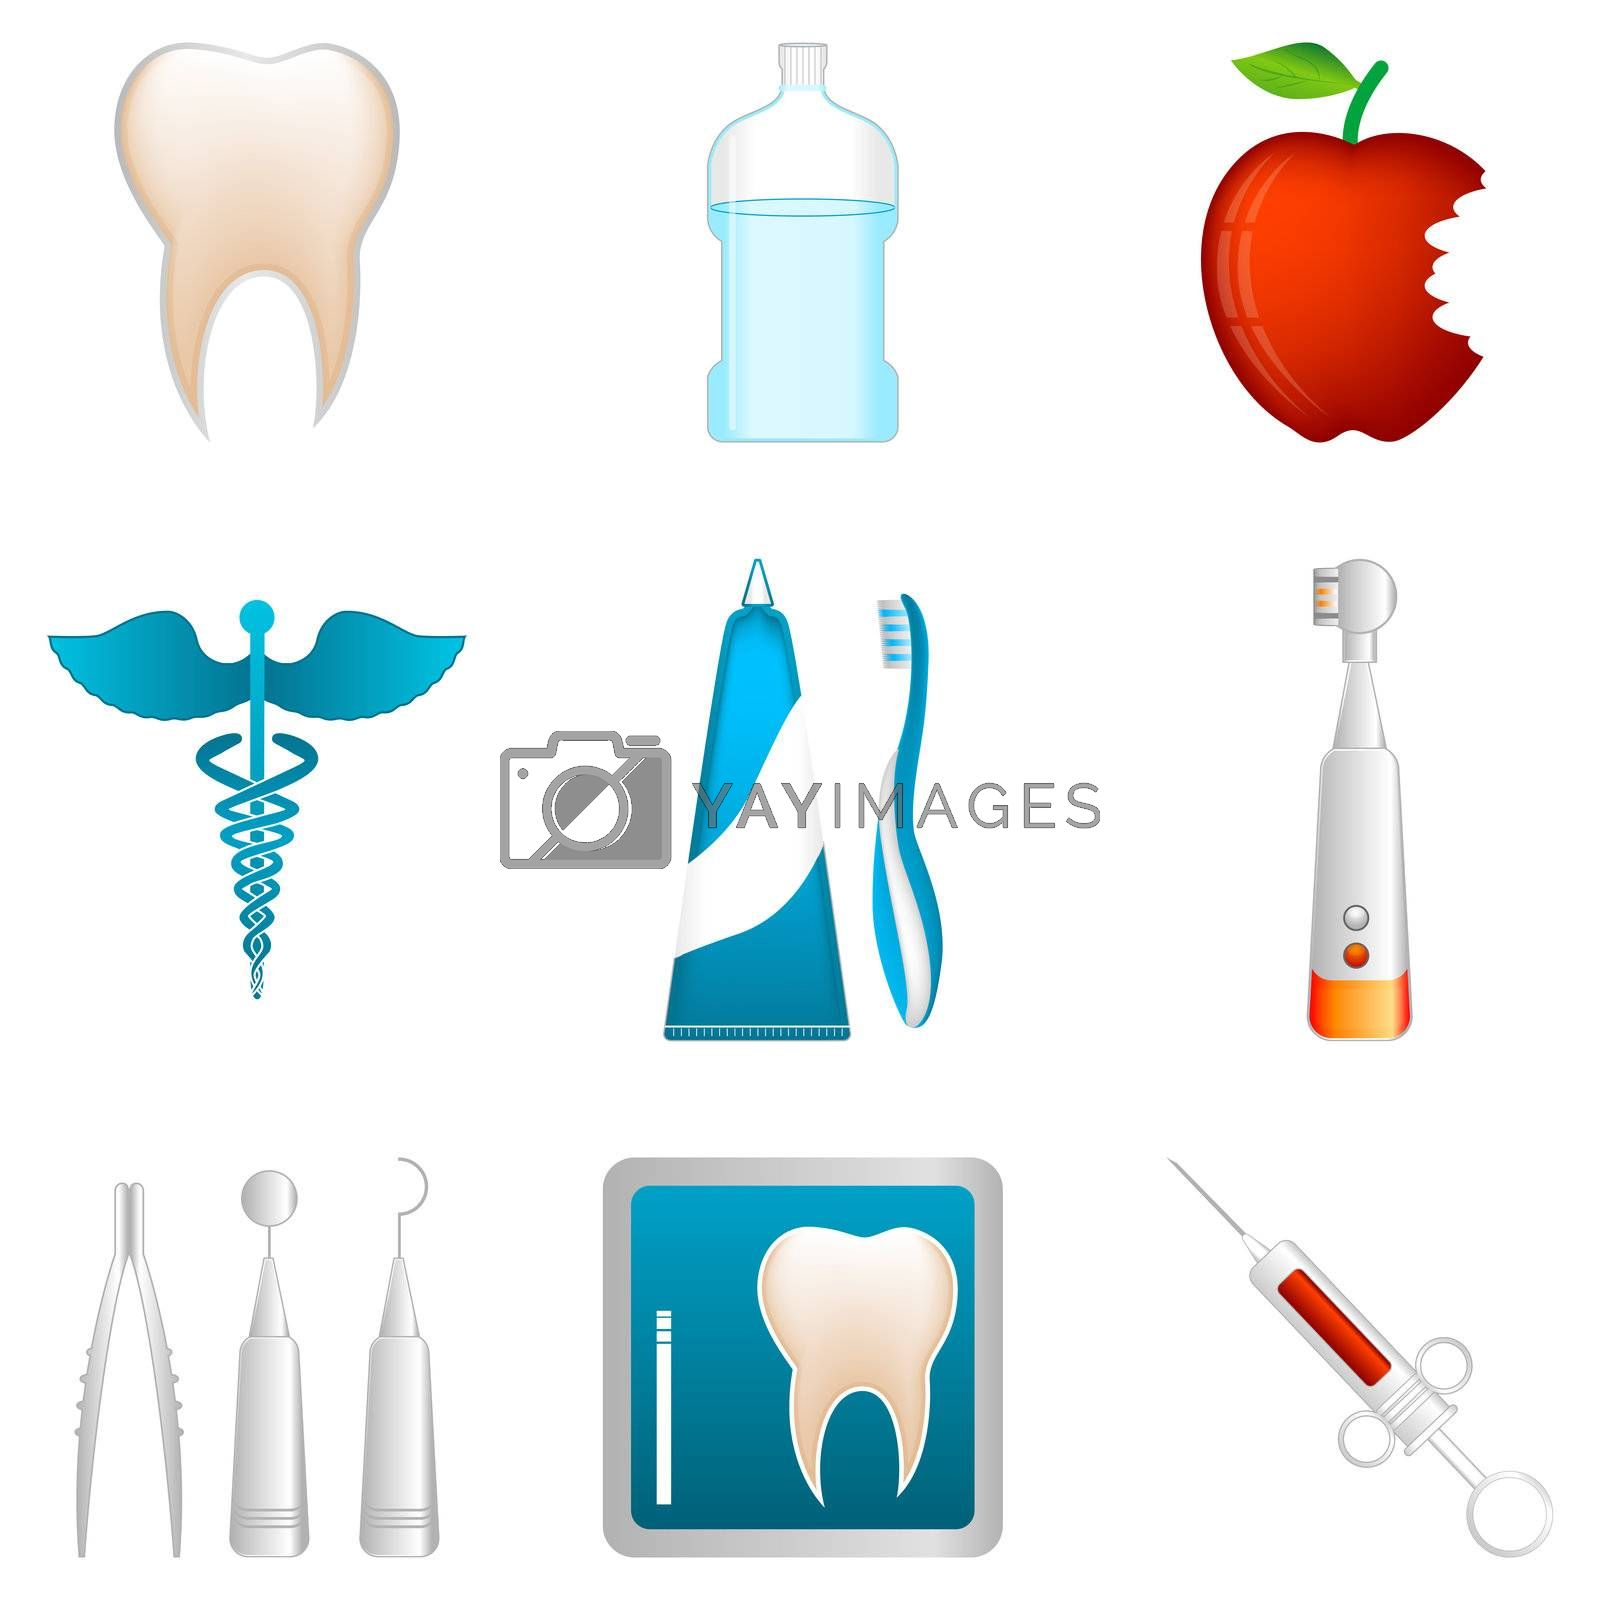 dental icons by get4net